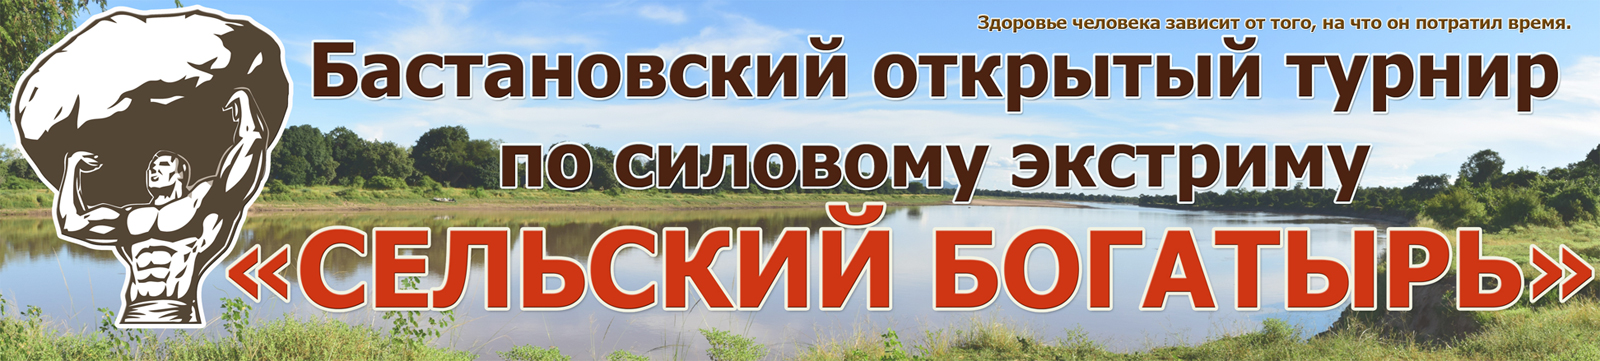 banner-silovoy-extrim-1600pxs